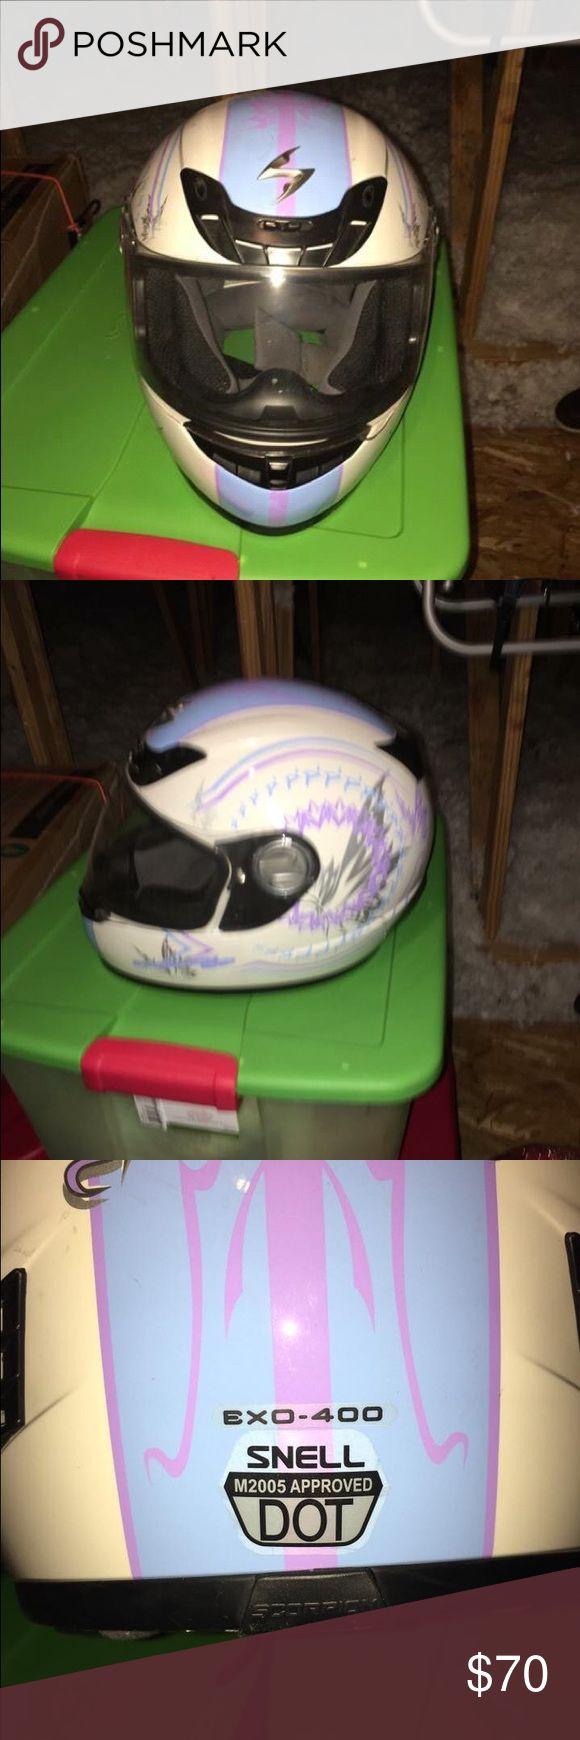 ❇️PRICE DROP❇️ Motorcycle Full Face Helmet Scorpion helmet; full face; DOT/SNELL compliant; EUC, non-smoker scorpion Other